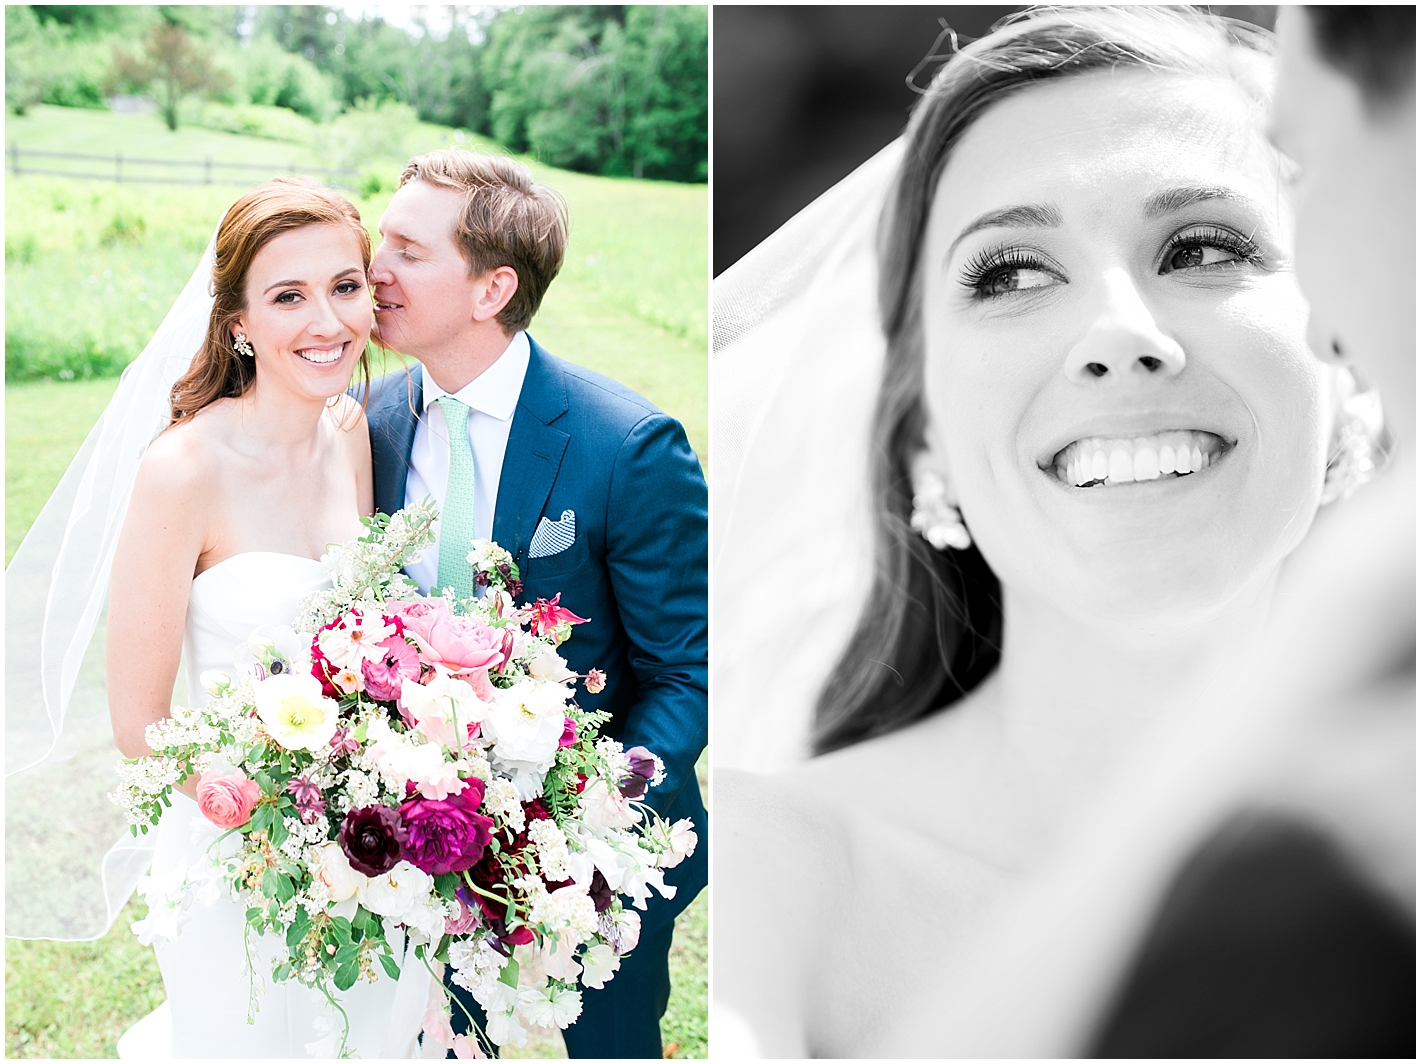 Stunning bride and groom images by New England Wedding Photographer Alyssa Parker Photography